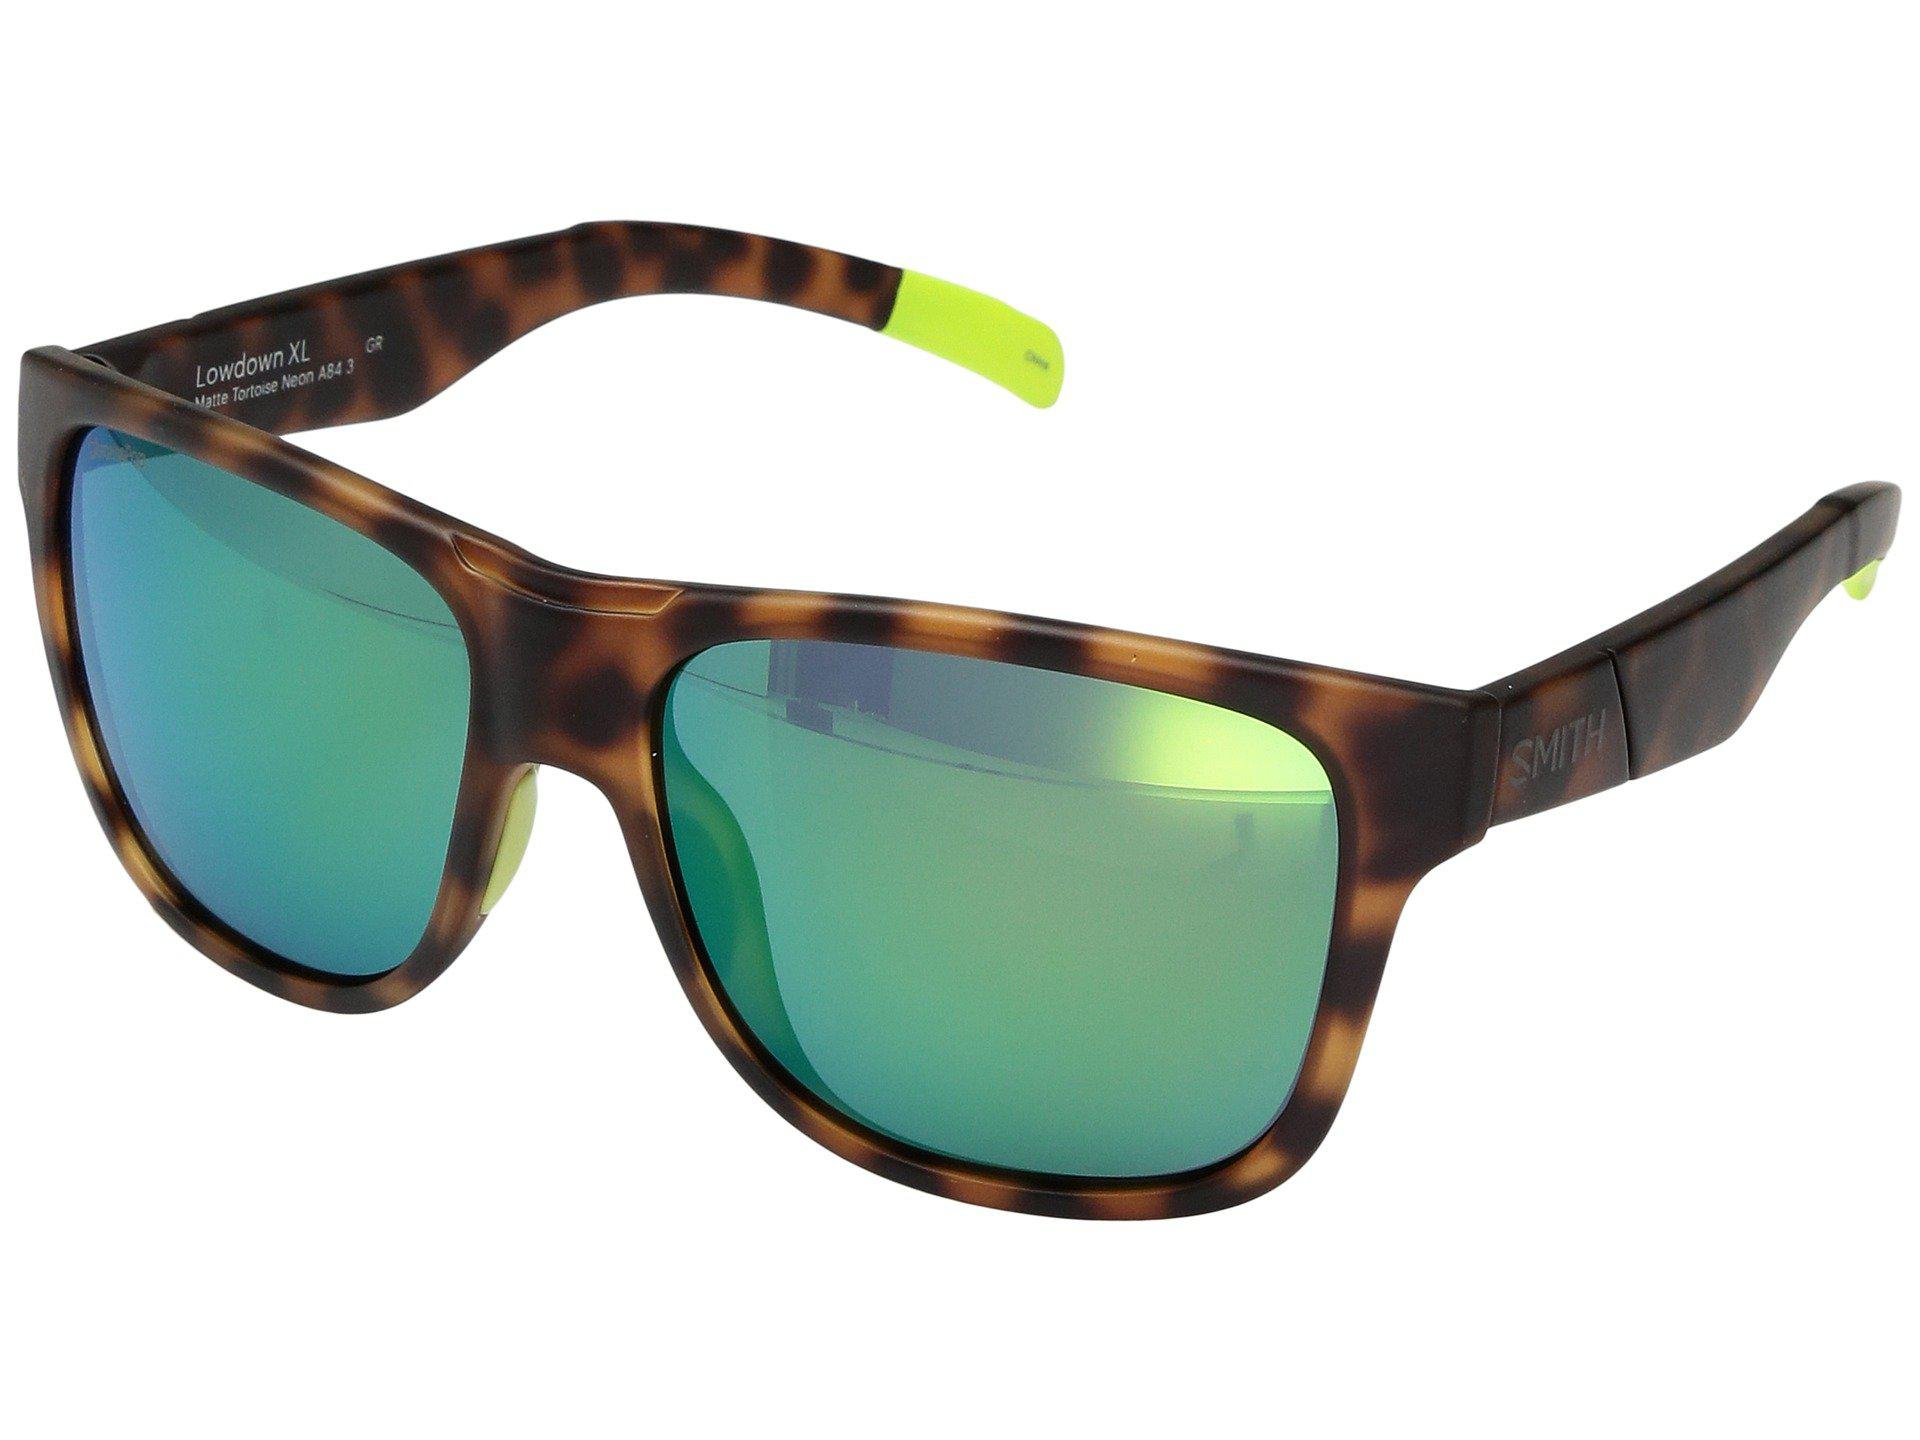 41af957dcd7 Smith Optics. Men s Lowdown Xl (matte Tortoise Neon chromapop Sun Green  Mirror Lens) Fashion Sunglasses